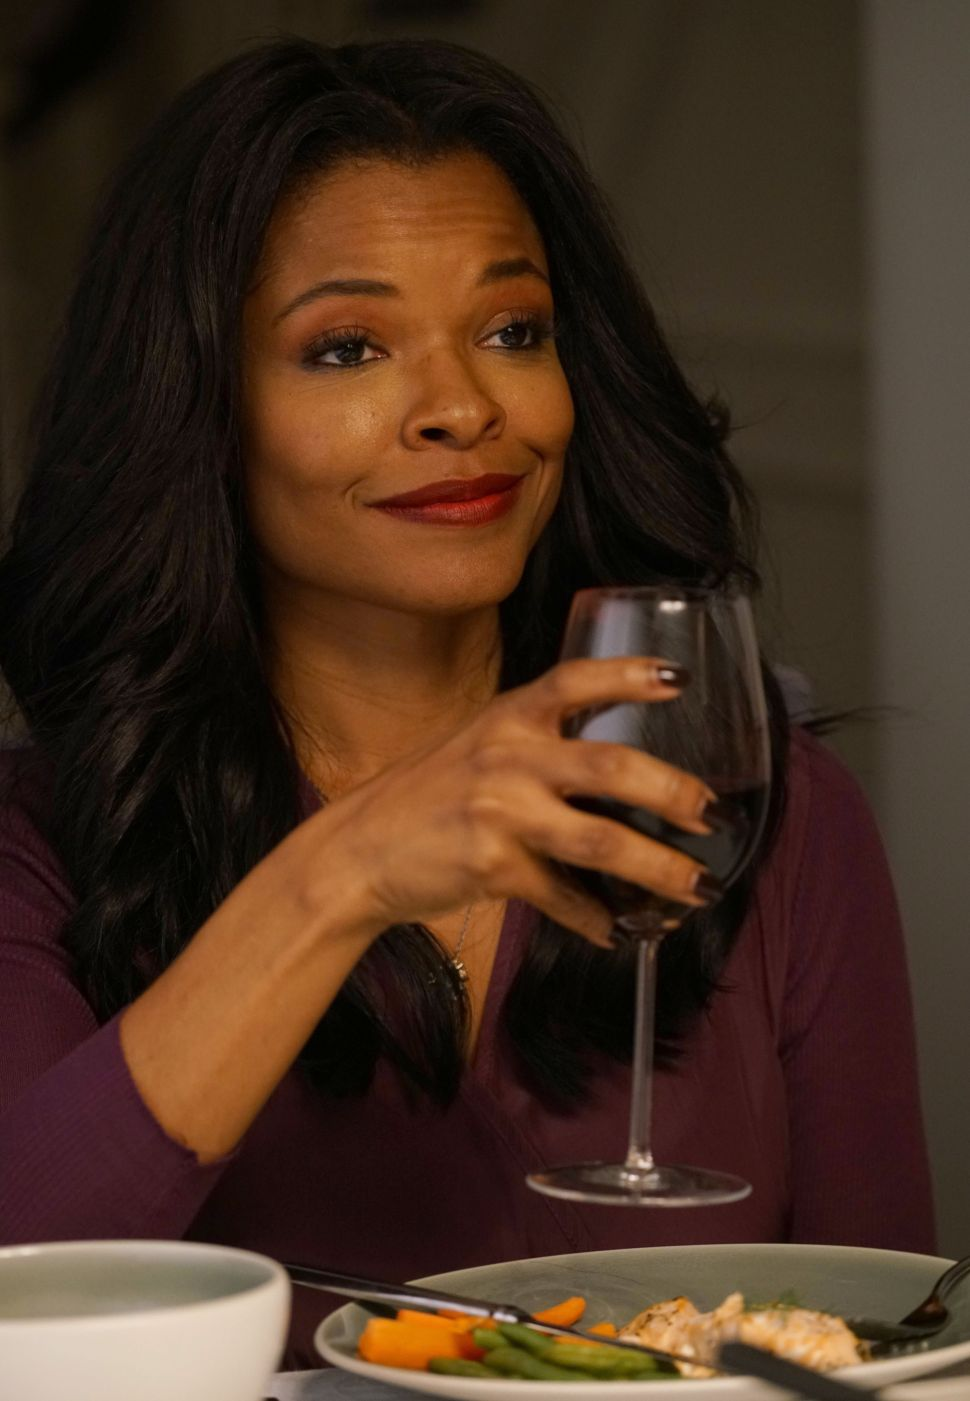 'Lethal Weapon' Star Keesha Sharp on Playing the 'Michelle Obama of Television'